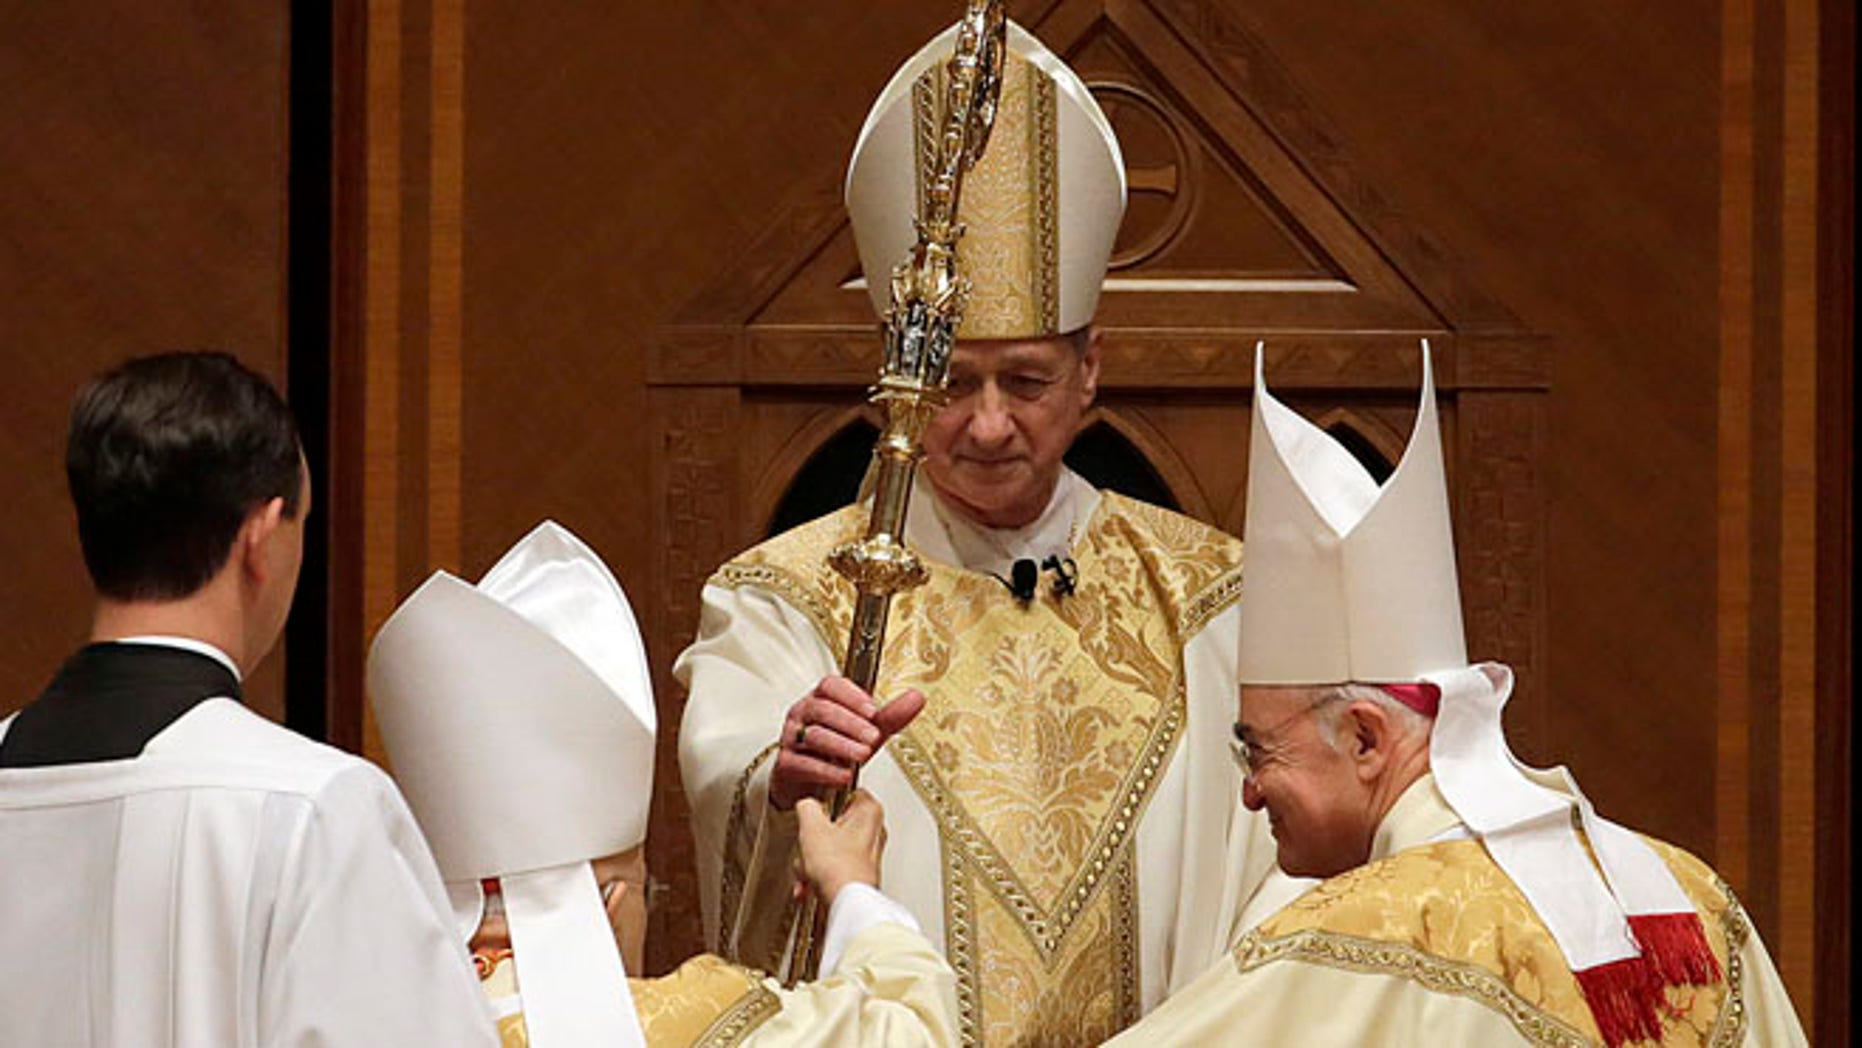 Nov. 18, 2014: The retiring Cardinal Francis George presents the crozier to the Archbishop Blase Cupich during his Installation Mass at Holy Name Cathedral in Chicago. (AP)